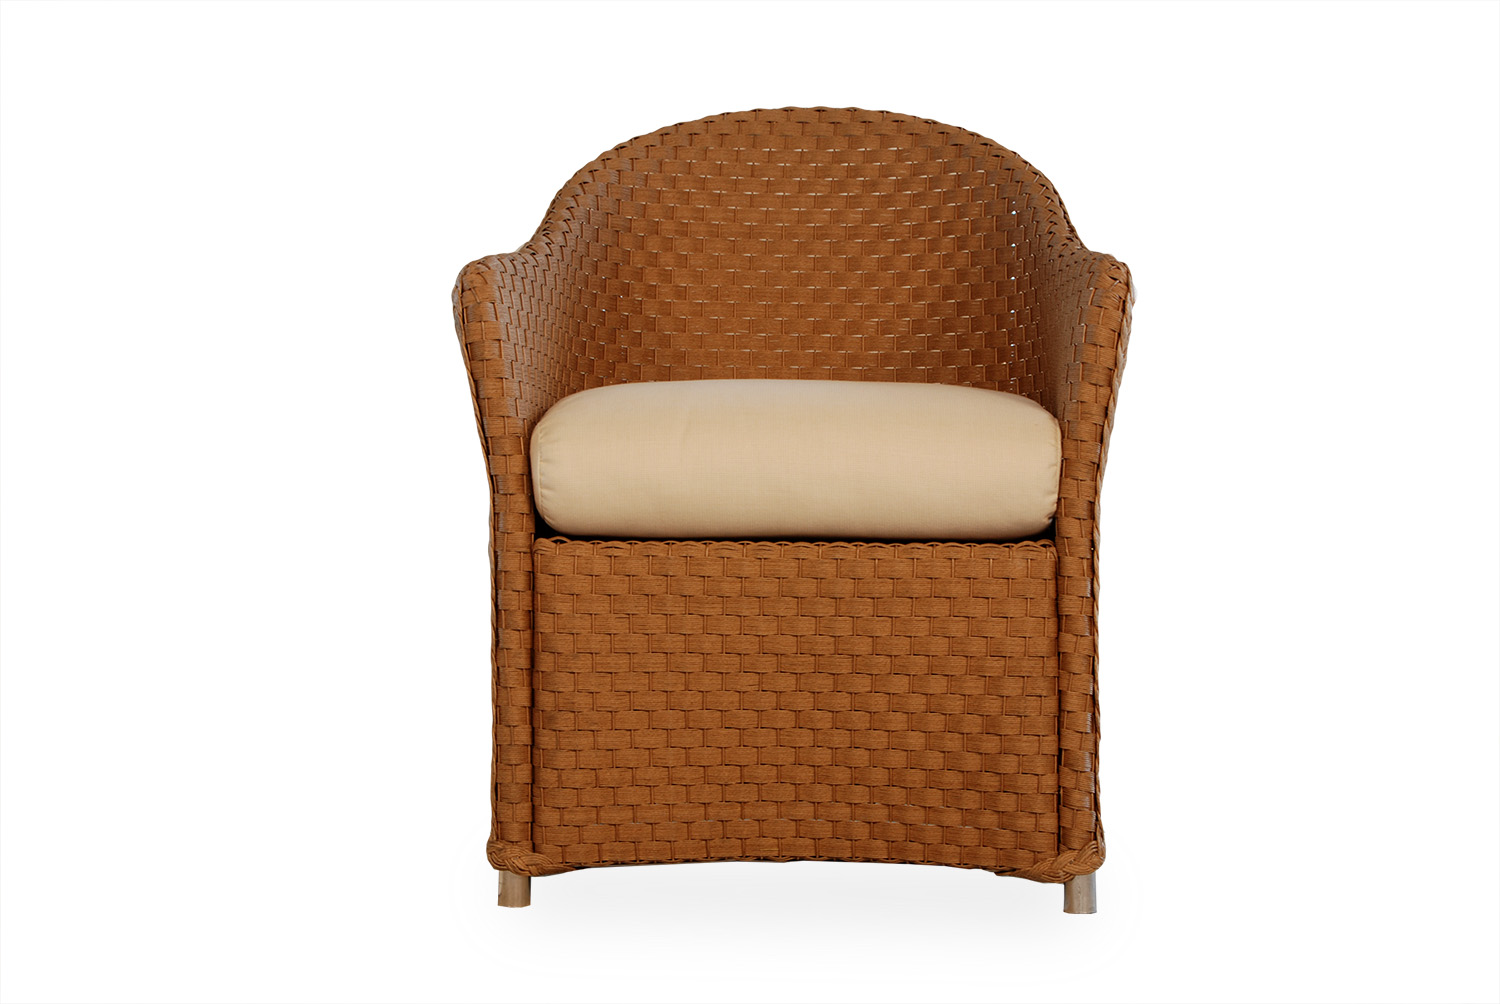 Weekend Retreat Dining Armchair 10 x 10 Weave